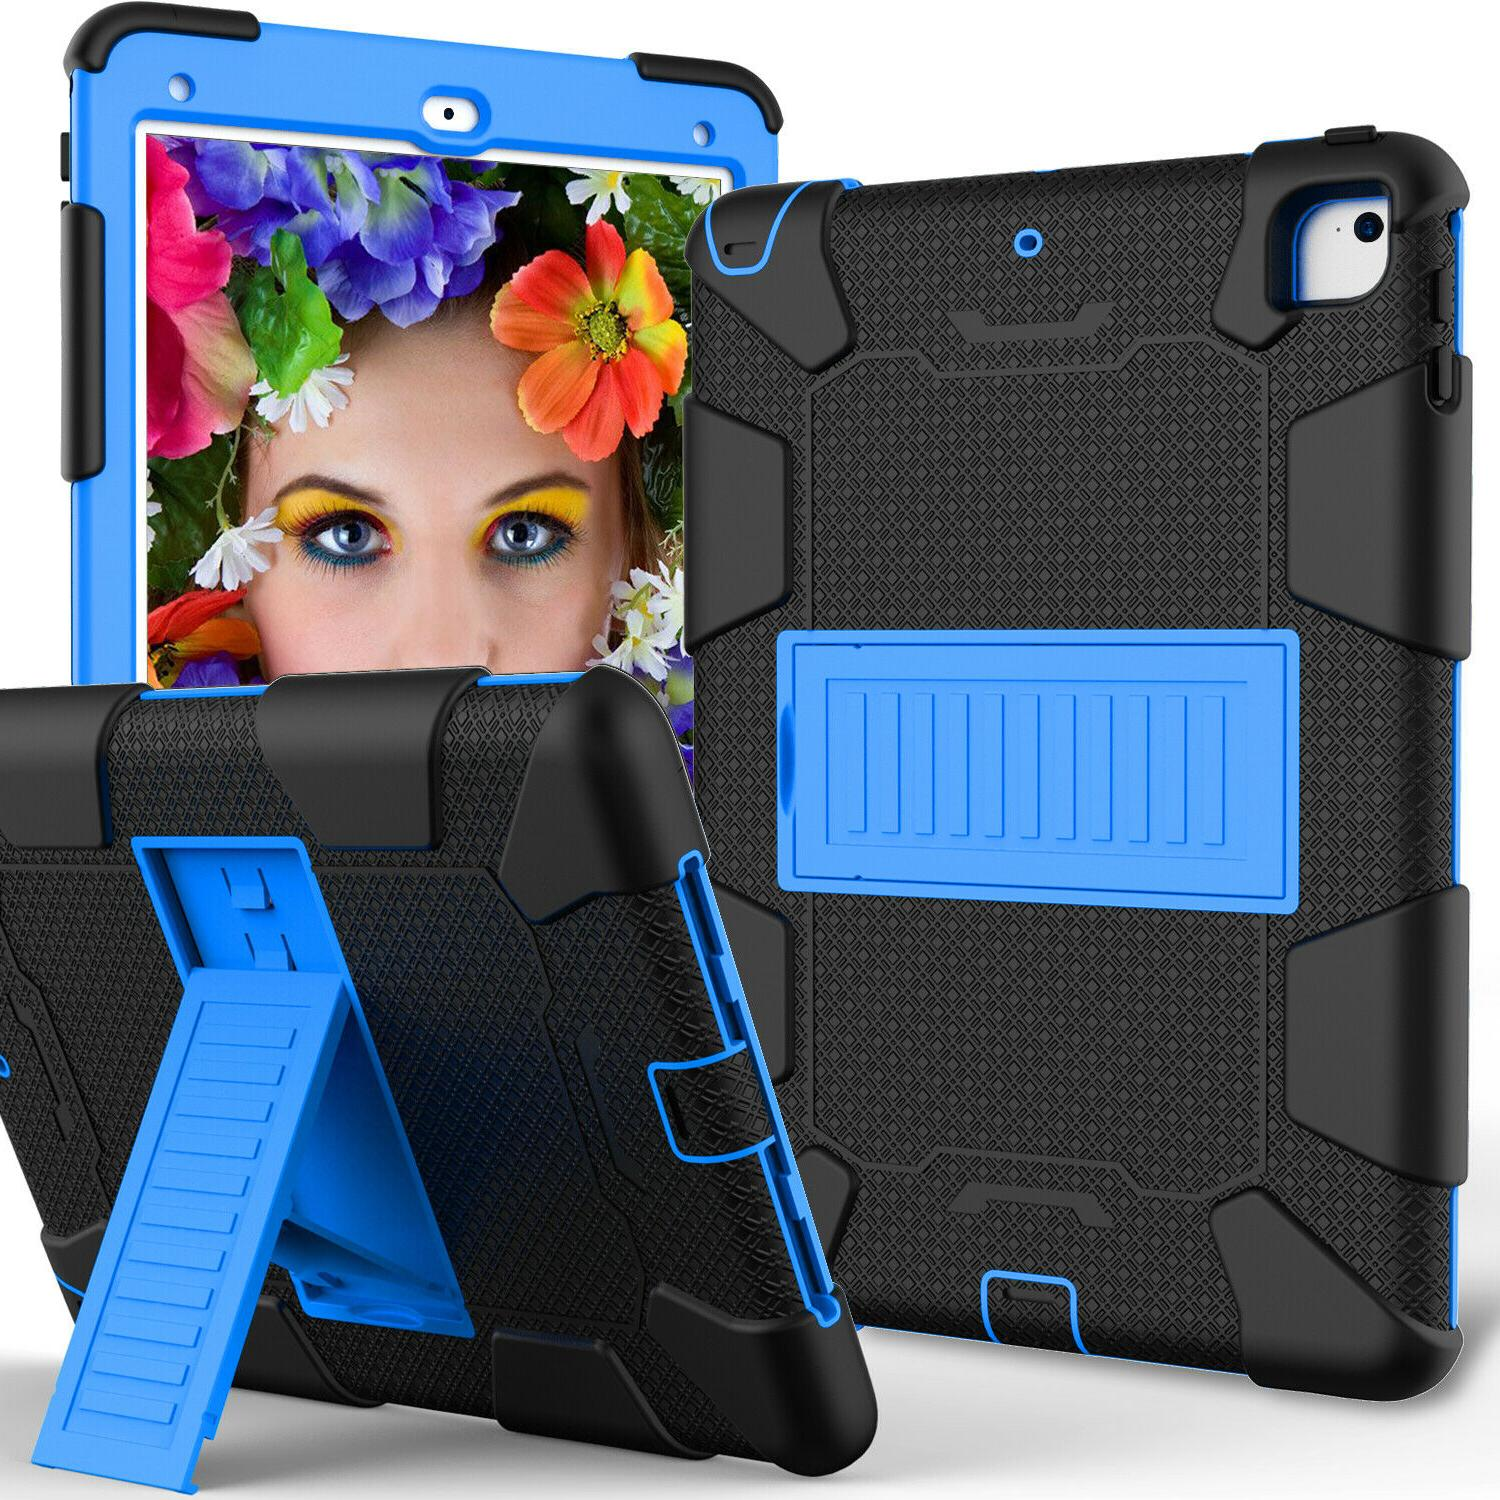 For Air 9.7 Shockproof Hard Cover